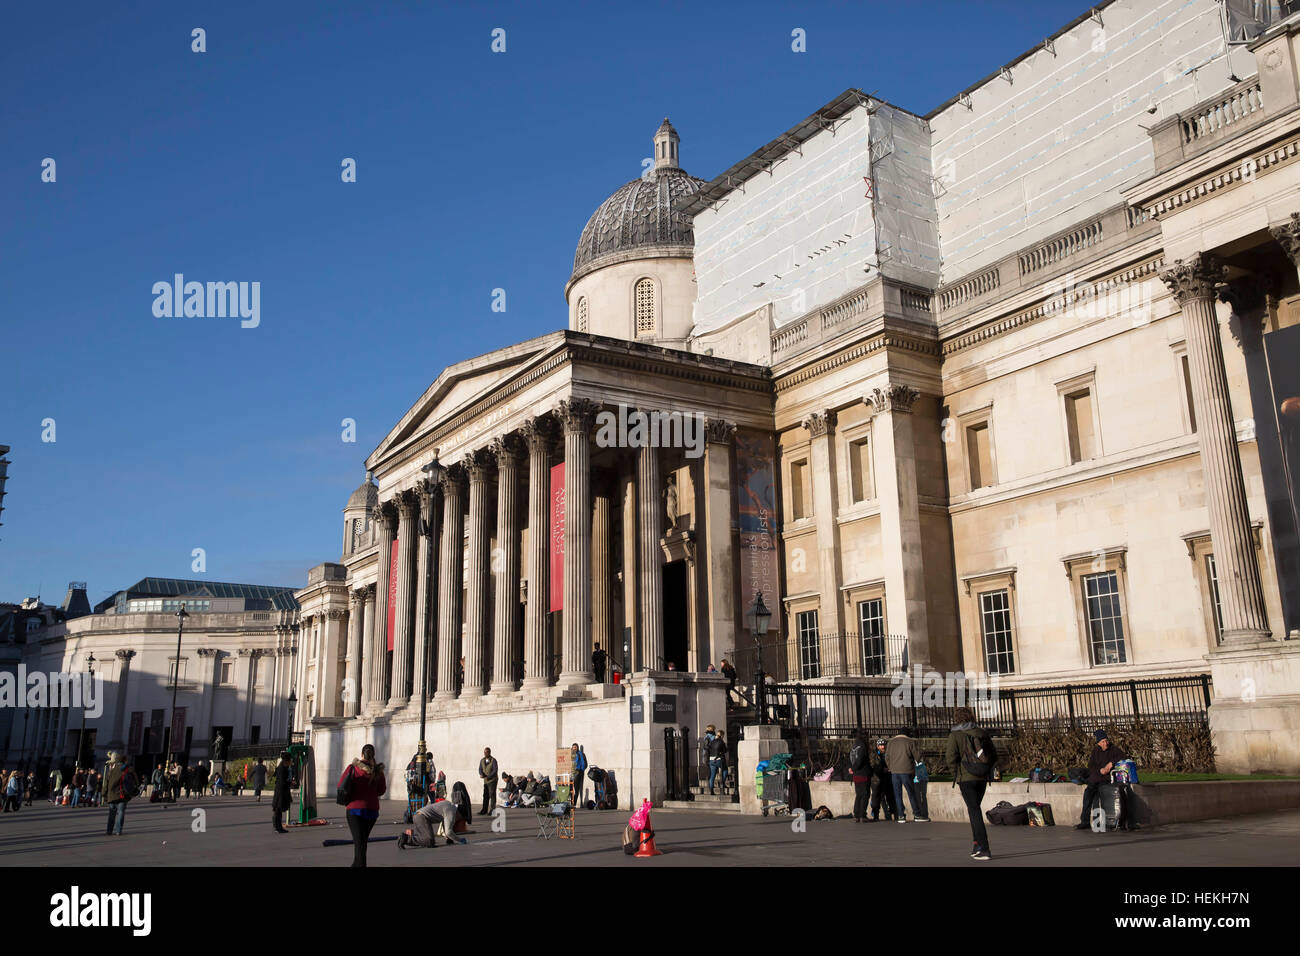 London, UK. 22nd Dec, 2016. Weather. Blue skies over London  © Keith Larby/Alamy Live News Stock Photo